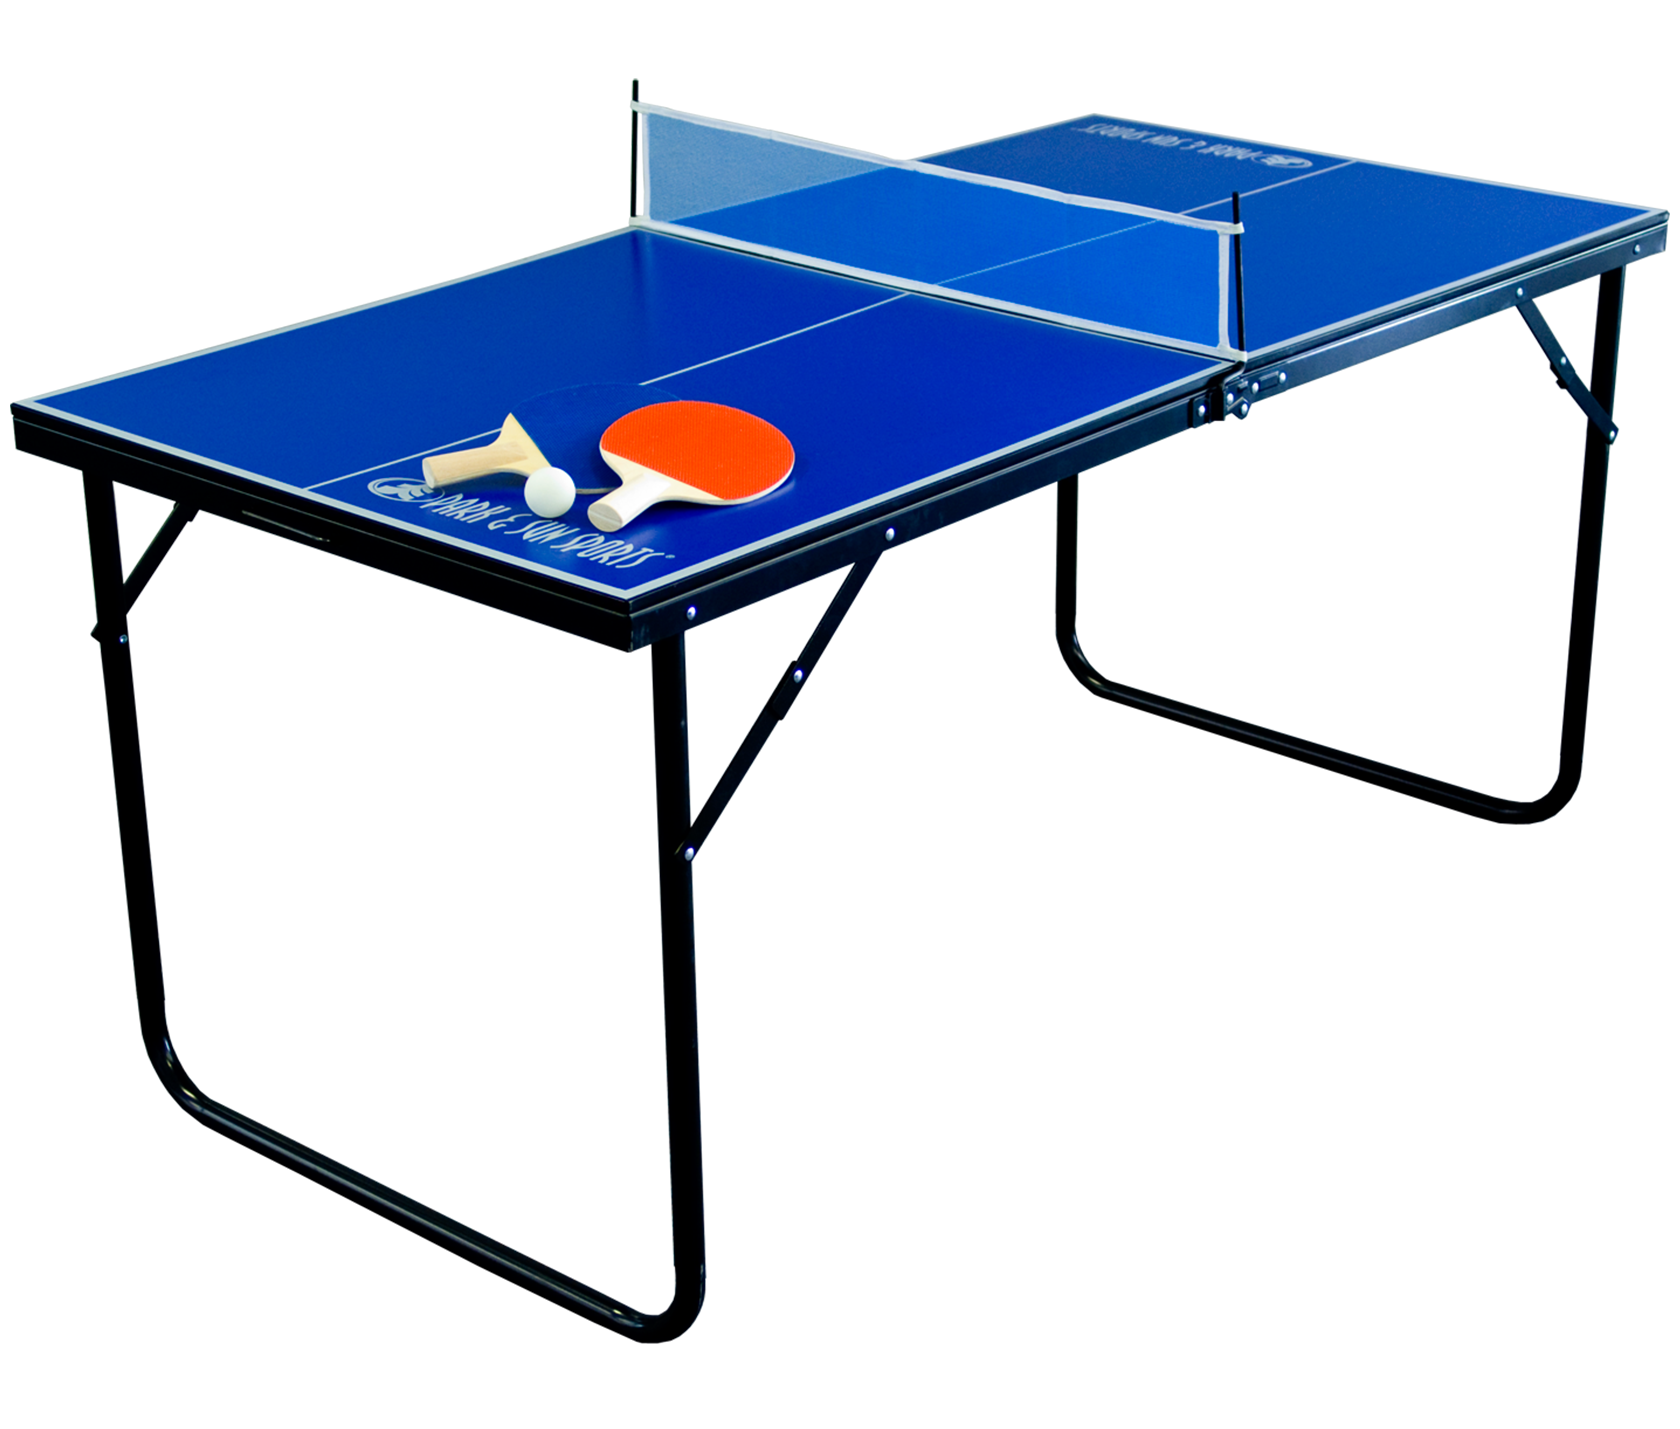 Park and Sports Blue Mini Table Tennis Table